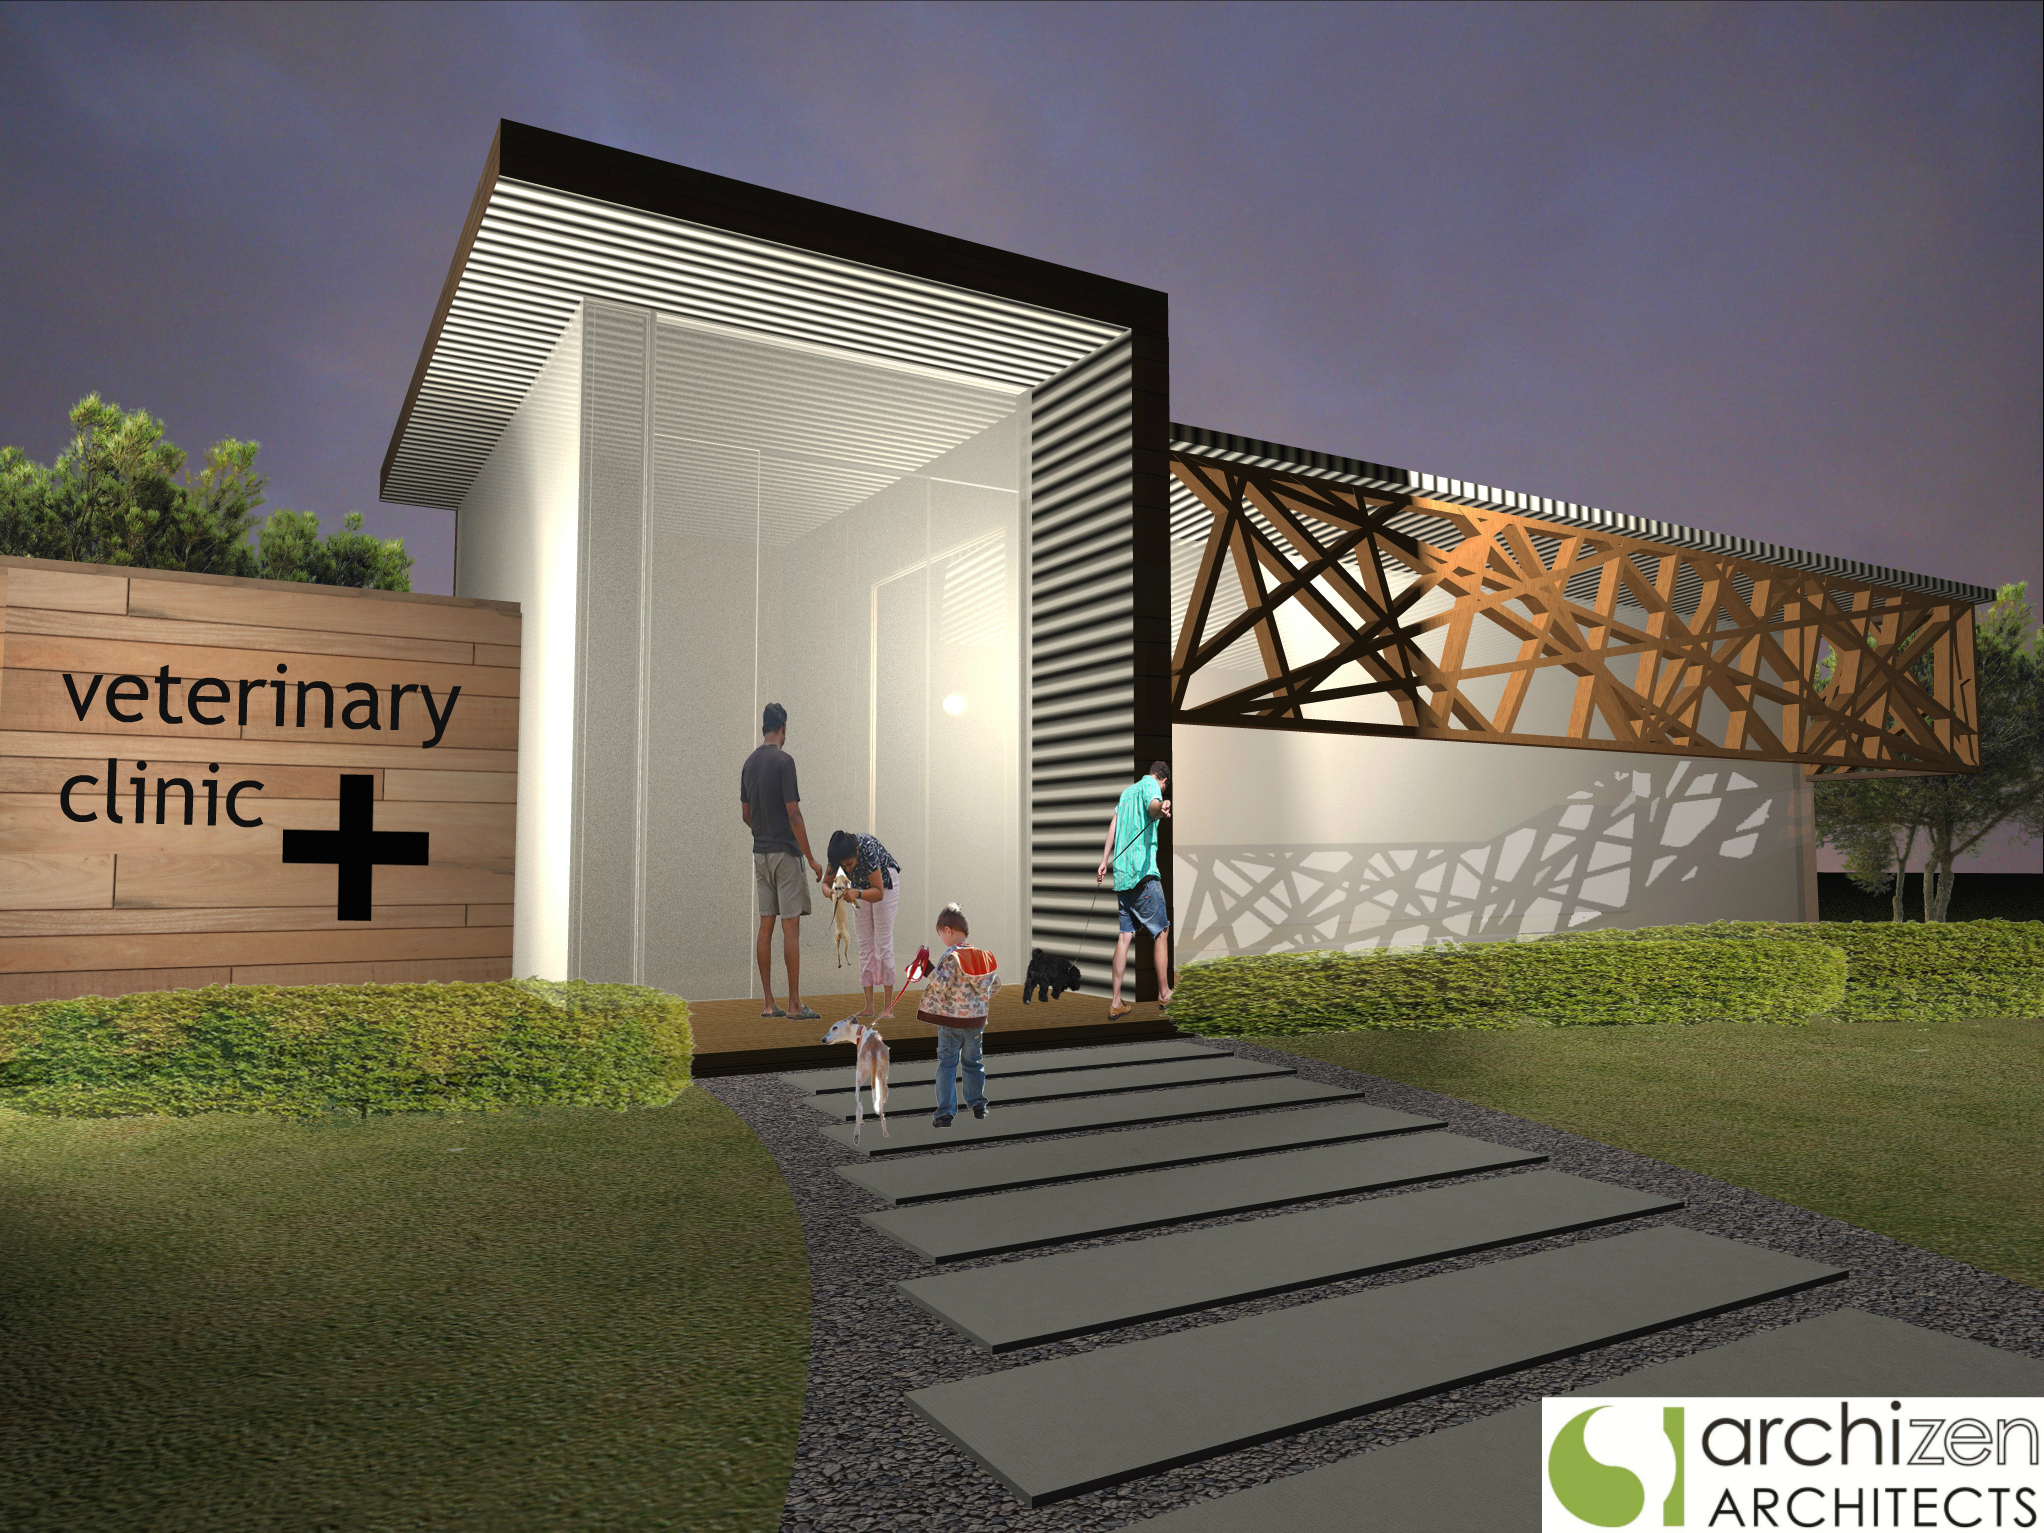 Archizen Architects Animal Hospital Veterinary Clinic Pet Hotel Puppy Preschool Boarding kennels Architectural Design Sydney NSW Brisbane QLD Melbourne VIC Australia NZ Tullamarine Airport Melbourne | Western Sydney Airport Badgerys Creek